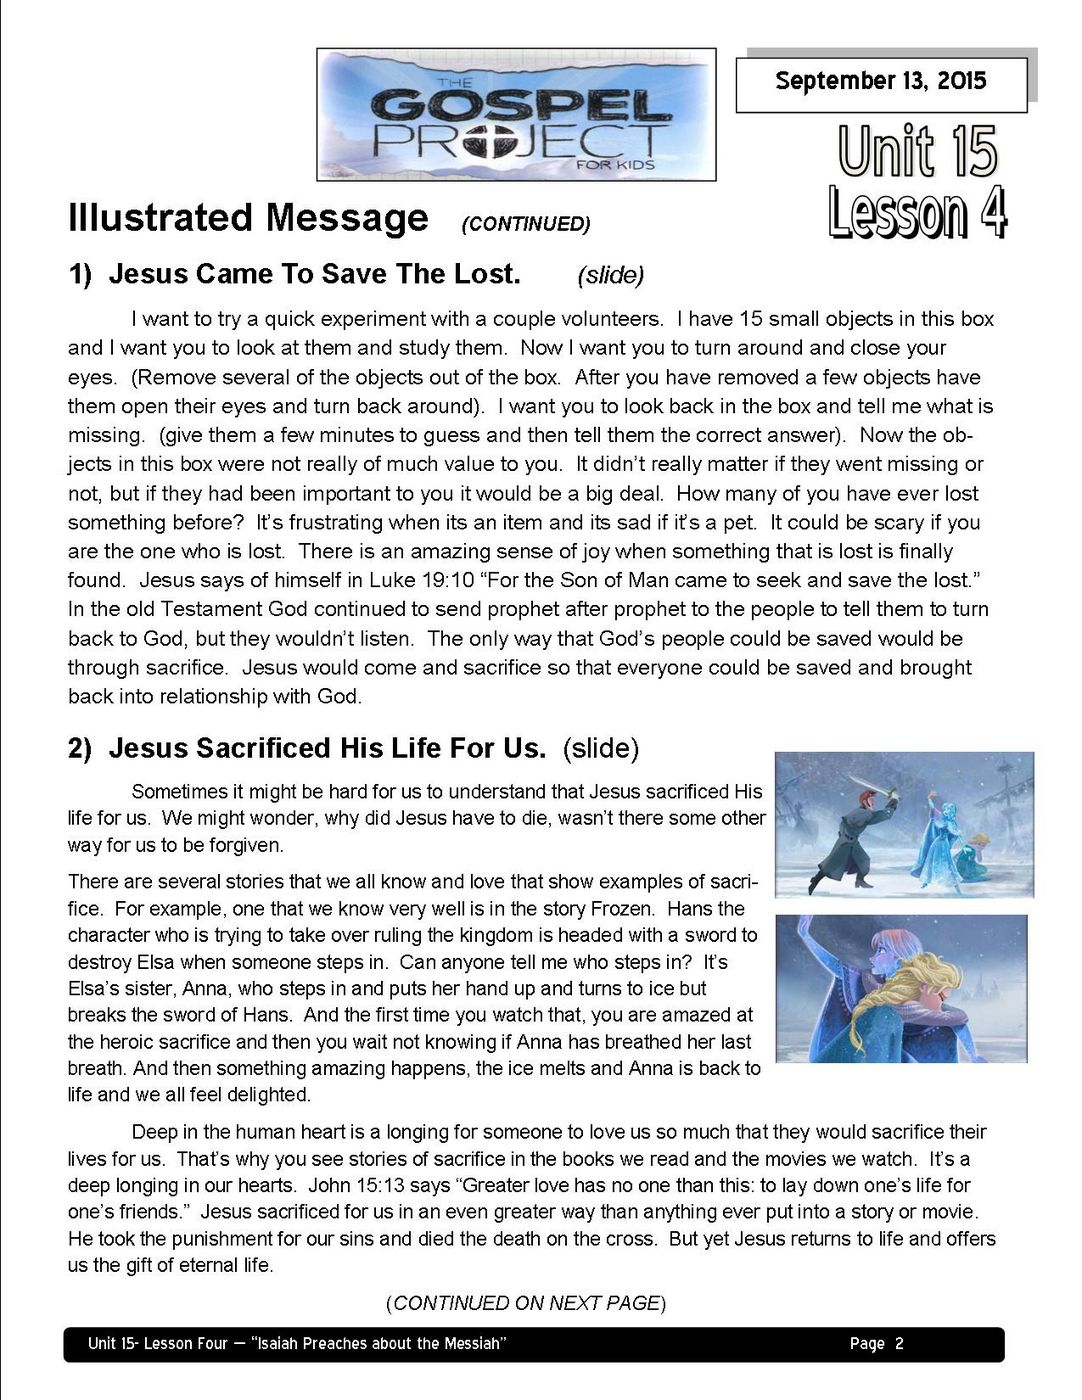 Lead U15- L4-page 2-Isaiah and the Messiah